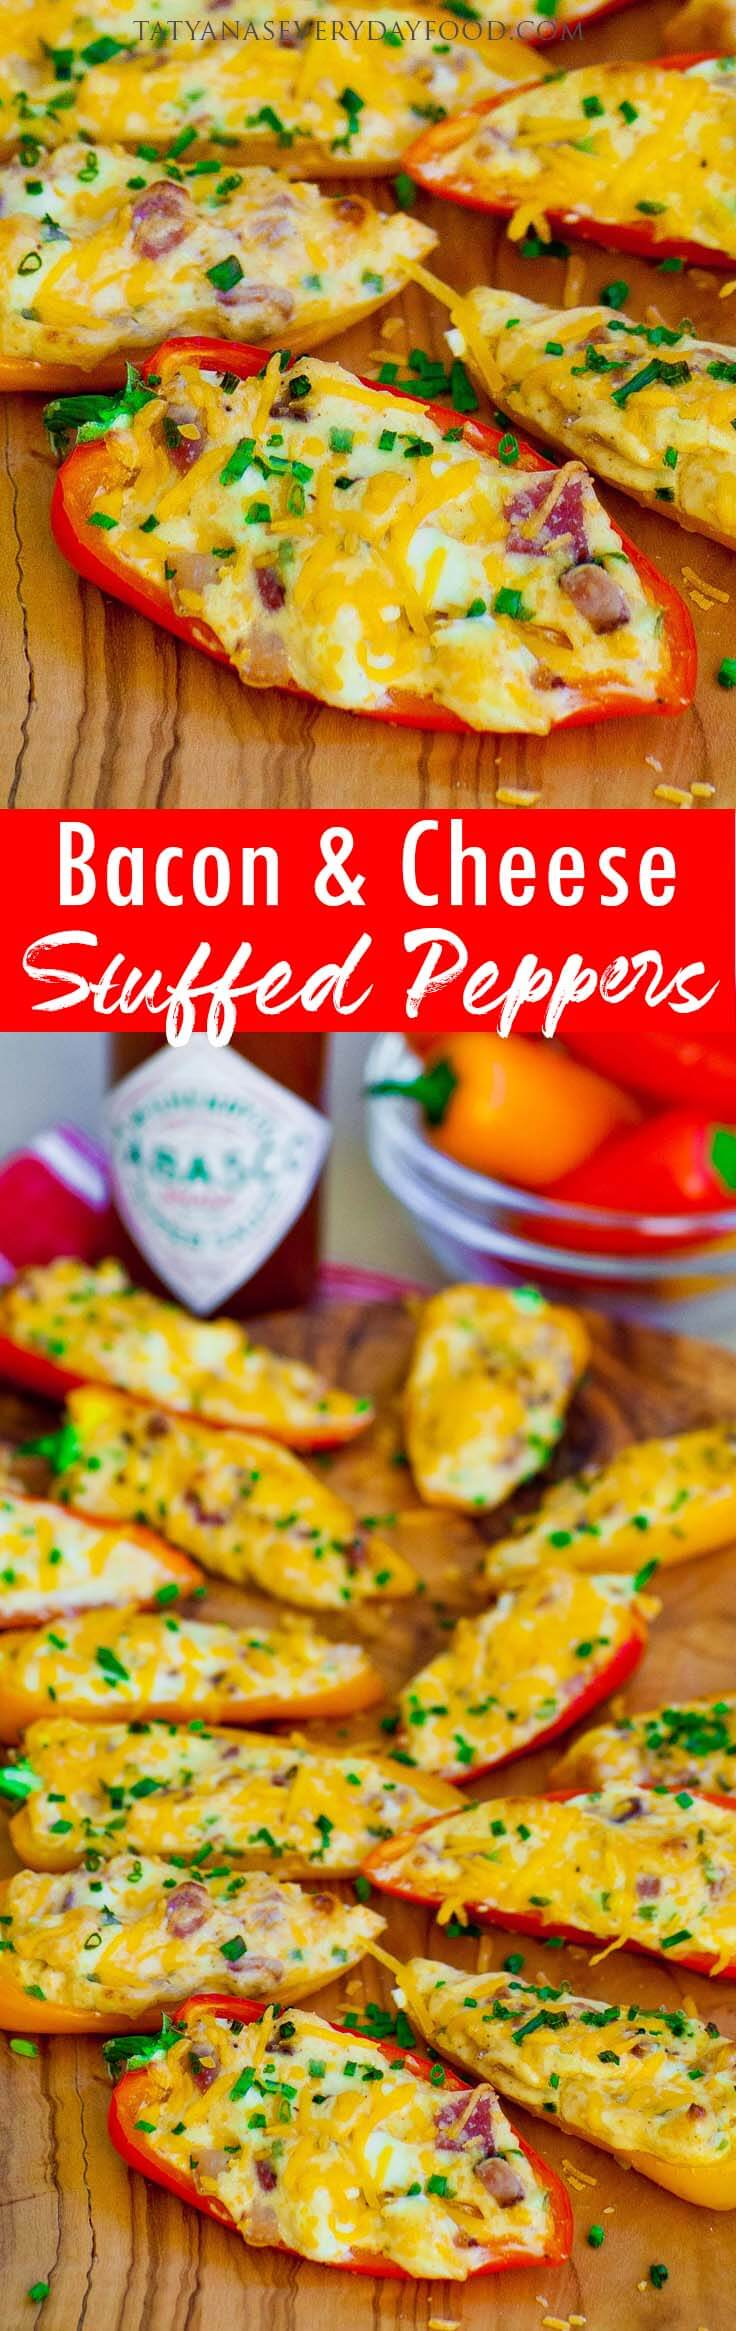 Bacon & Cheese Stuffed Peppers